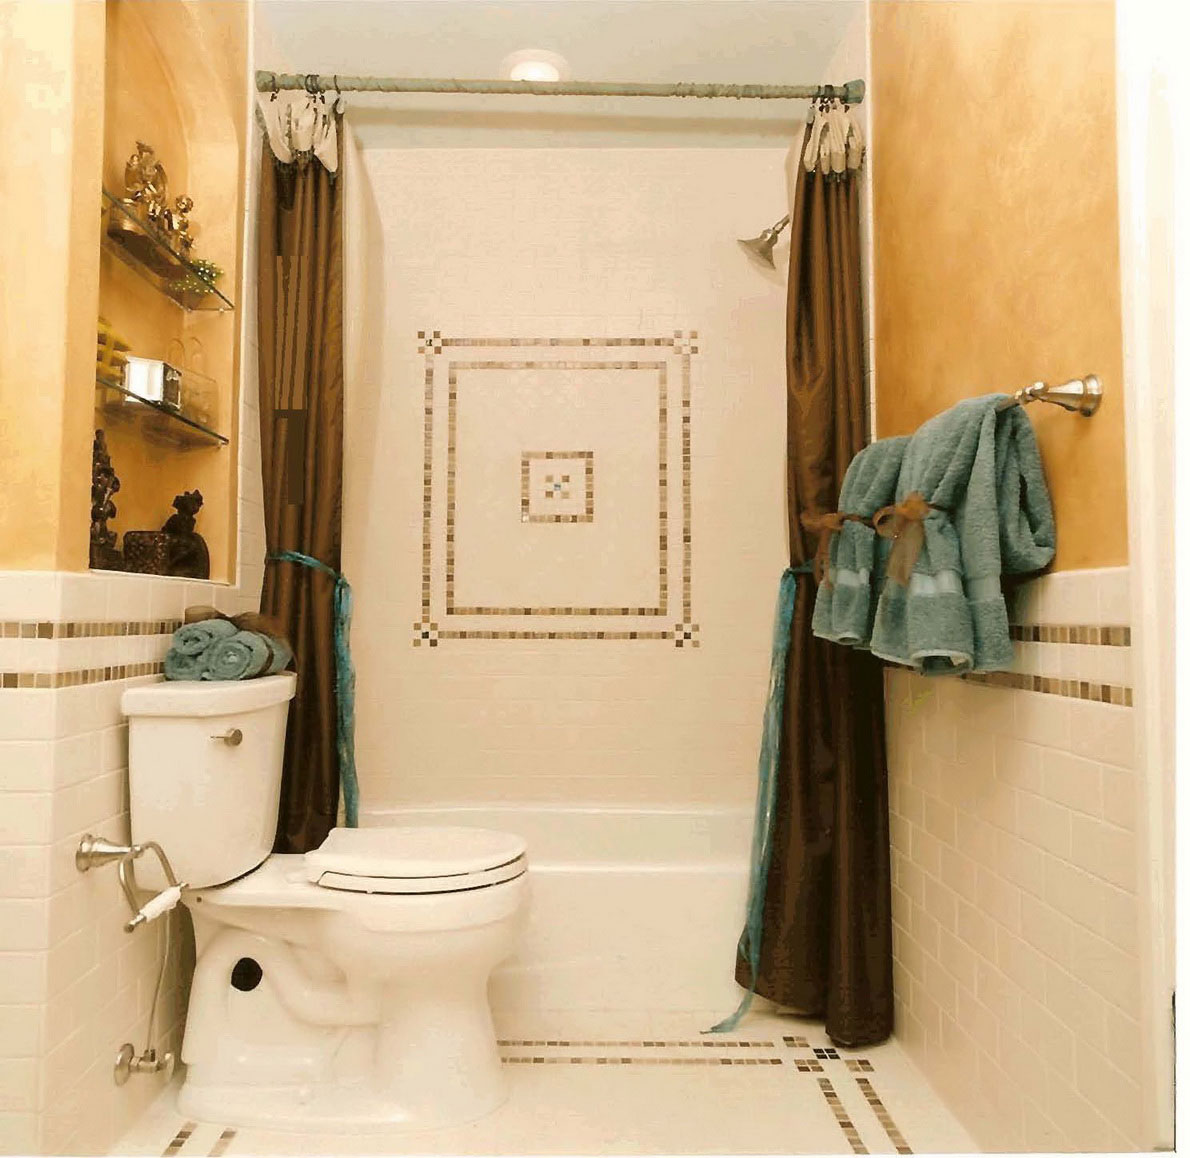 Bathroom Designs For Small Spaces (Image 3 of 20)